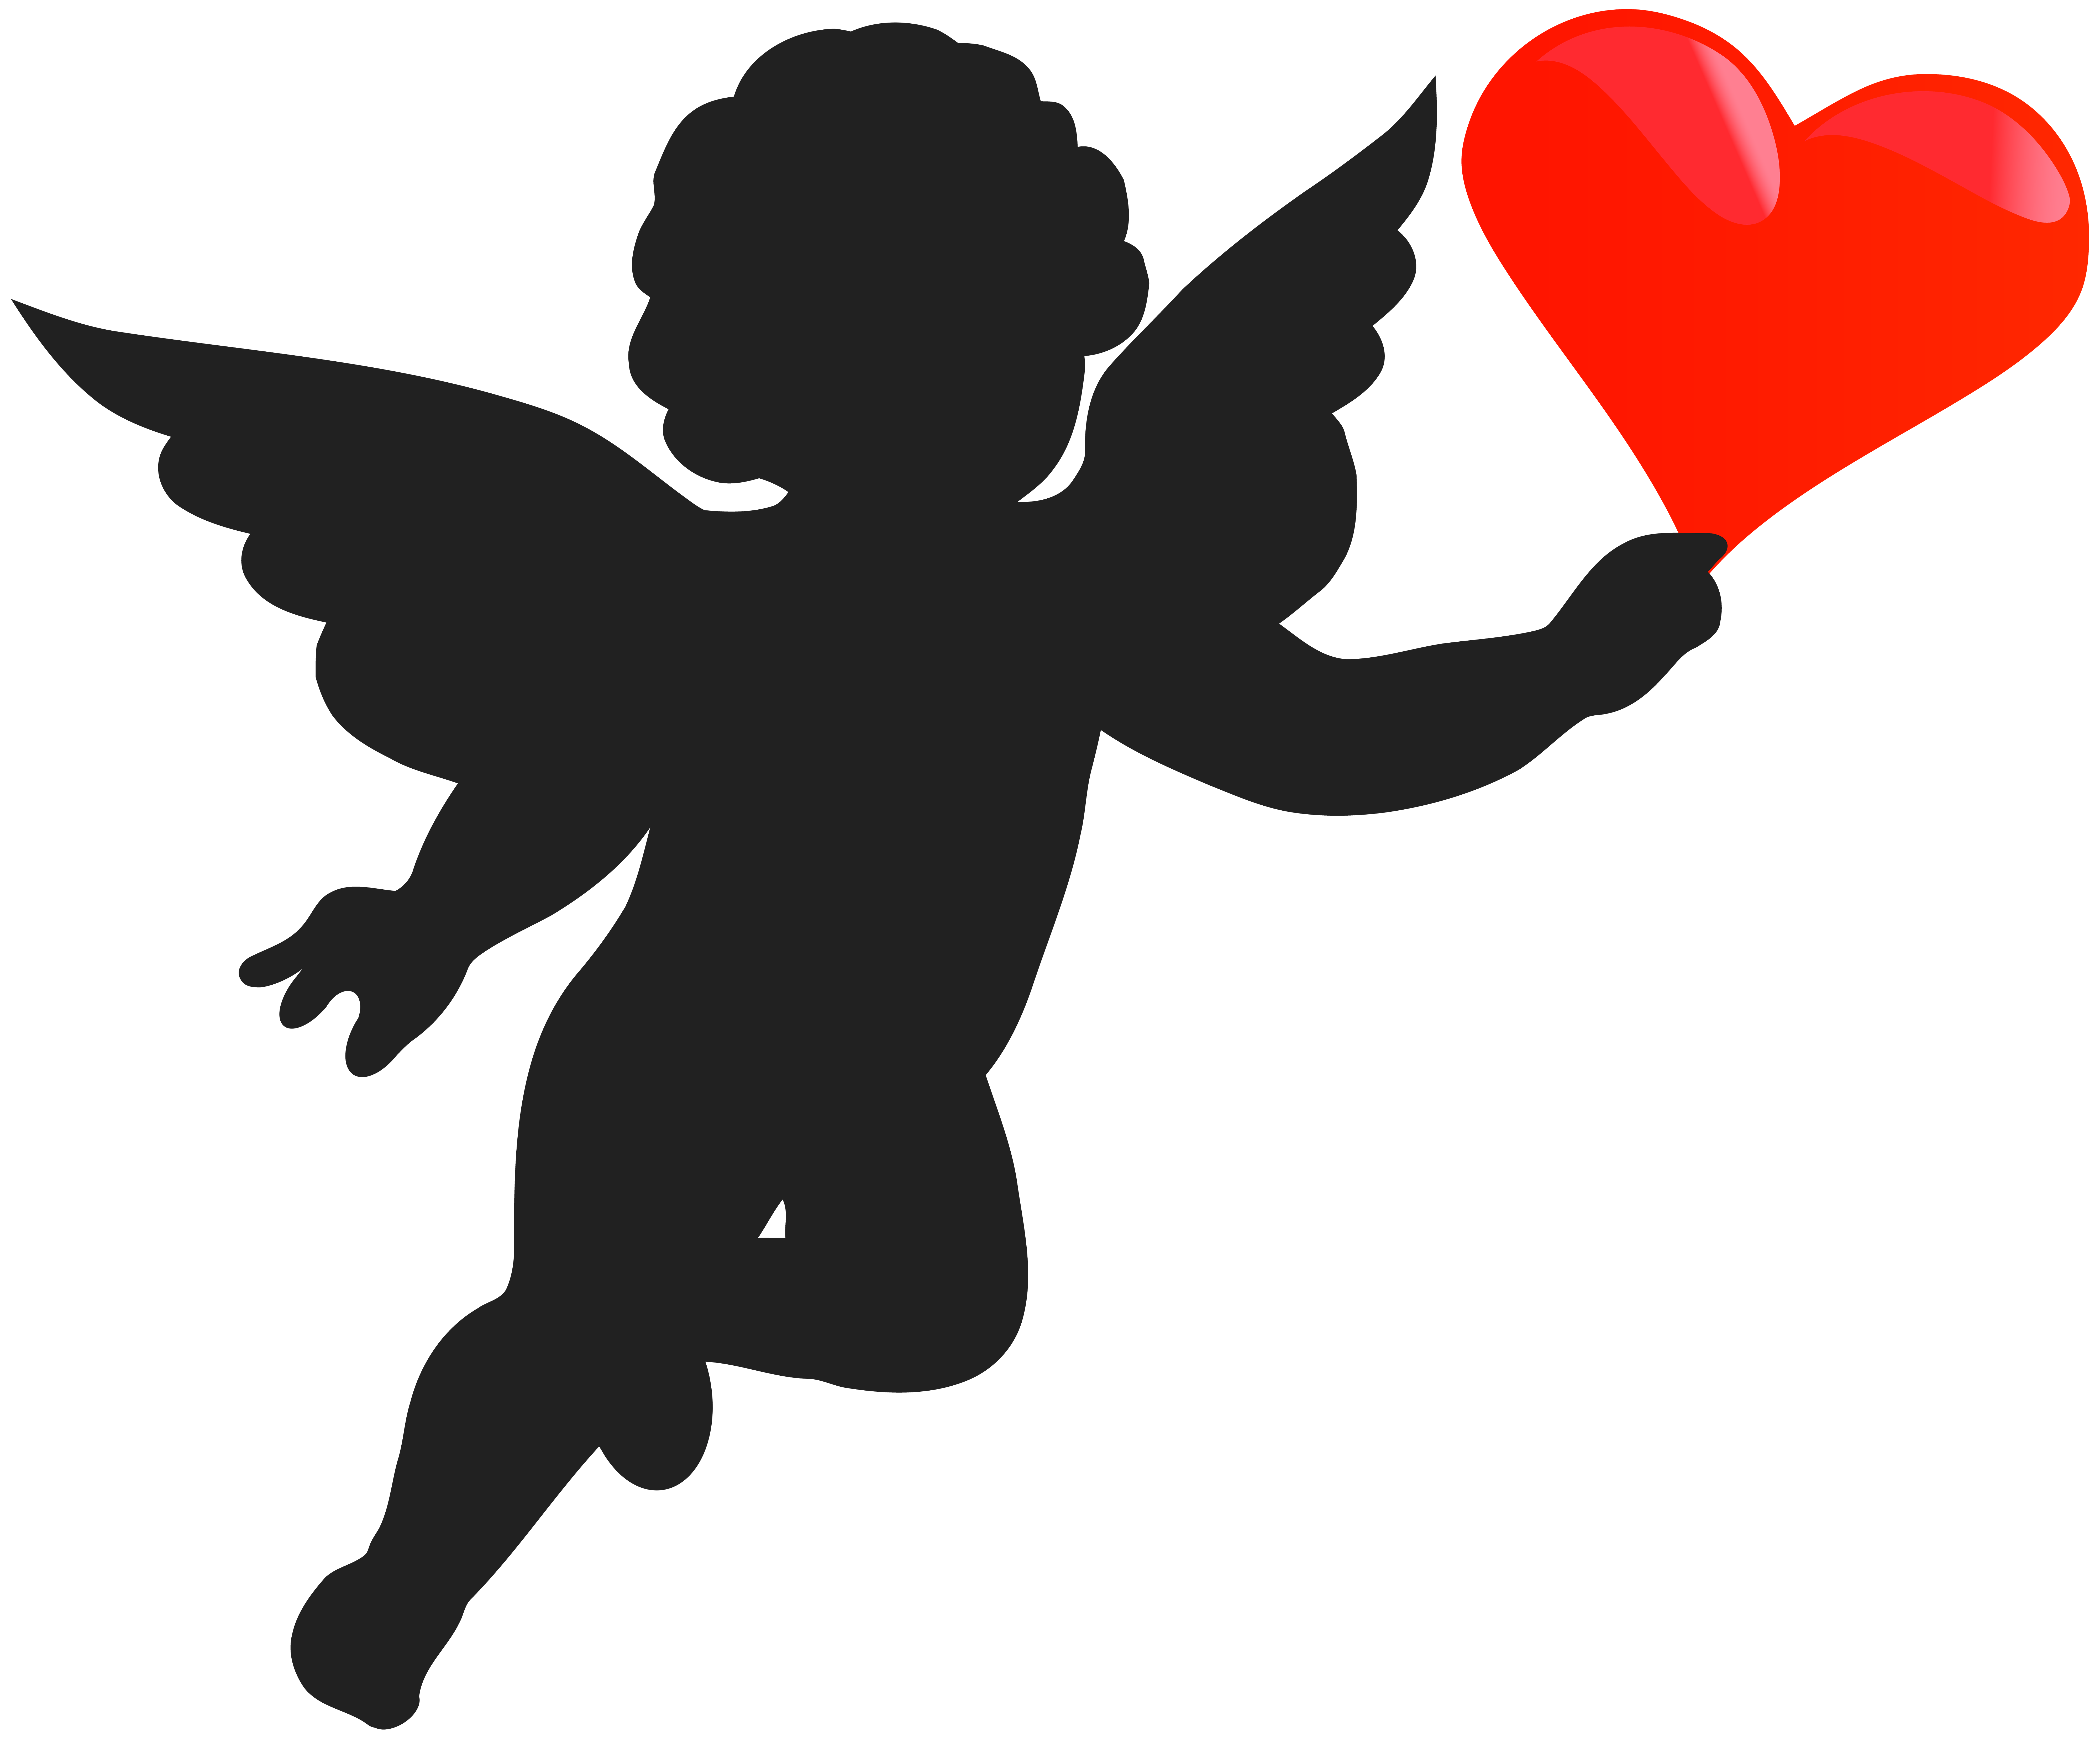 Heart and hands clipart image royalty free stock Heart Silhouette at GetDrawings.com | Free for personal use Heart ... image royalty free stock